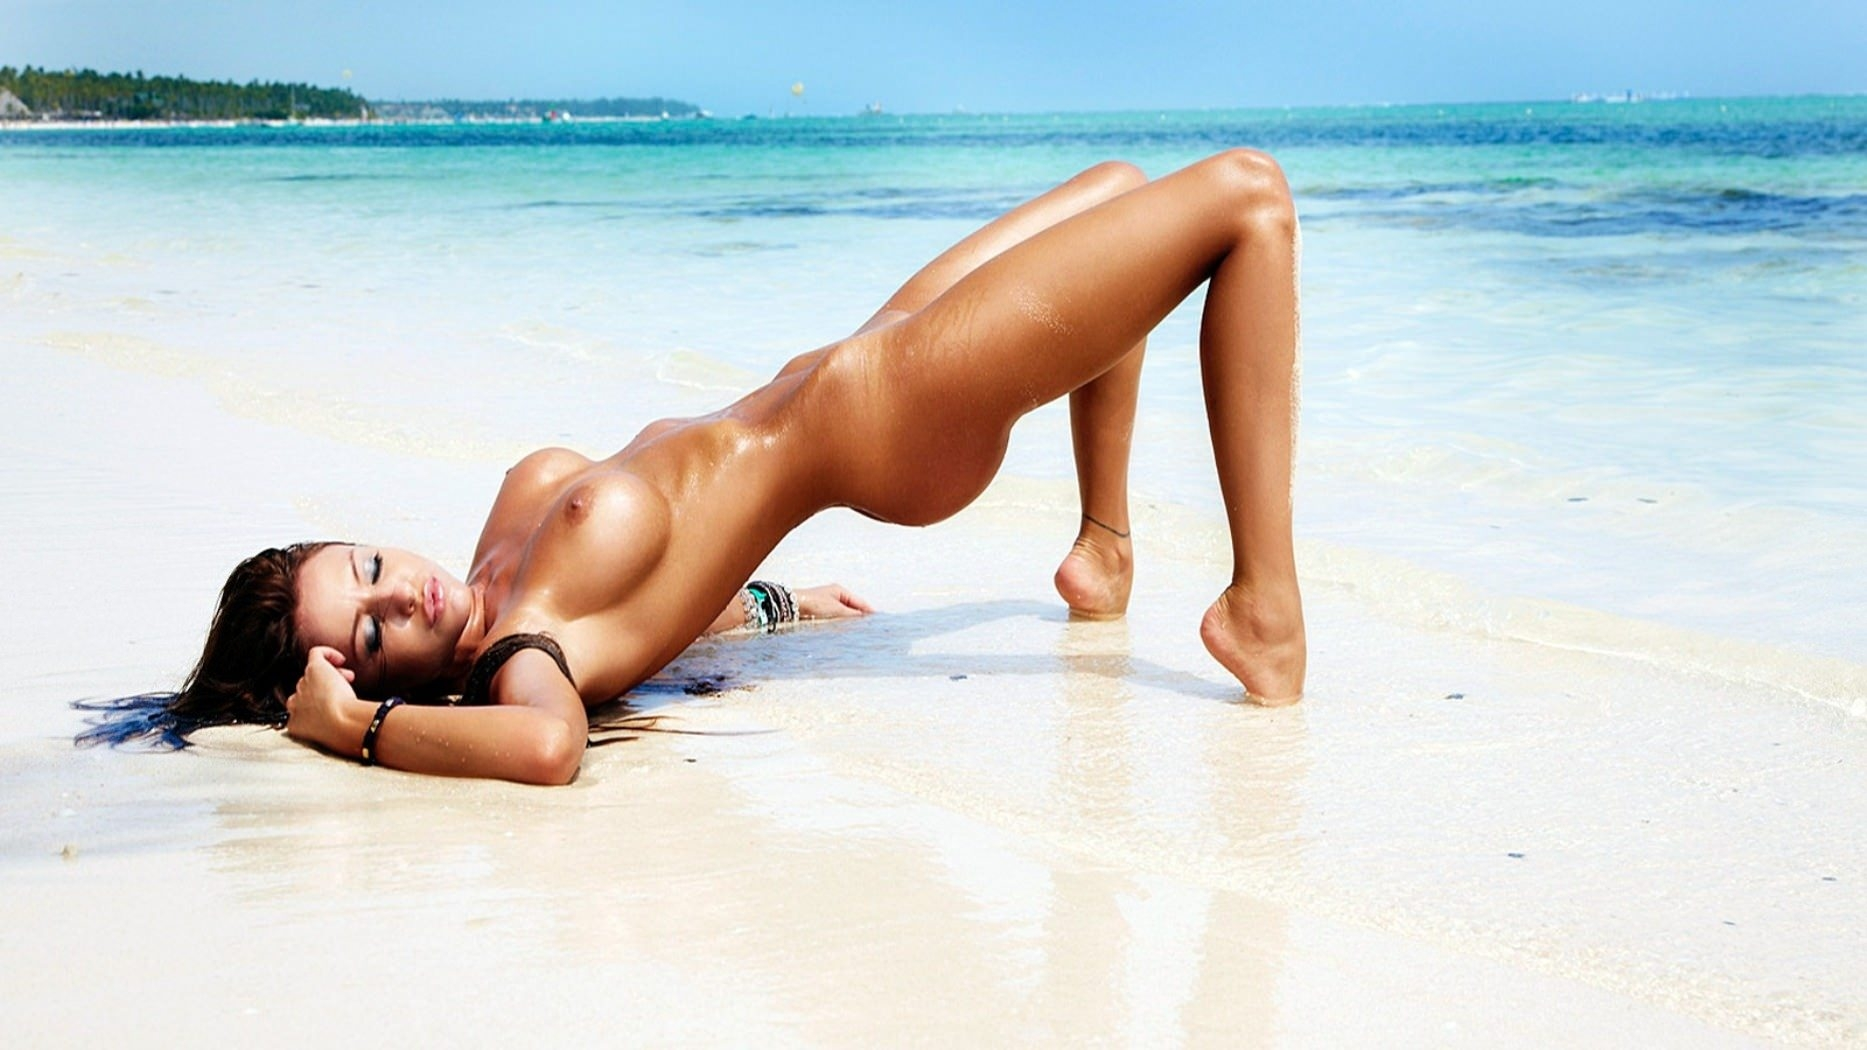 Erotic Beach Stock Photos And Images